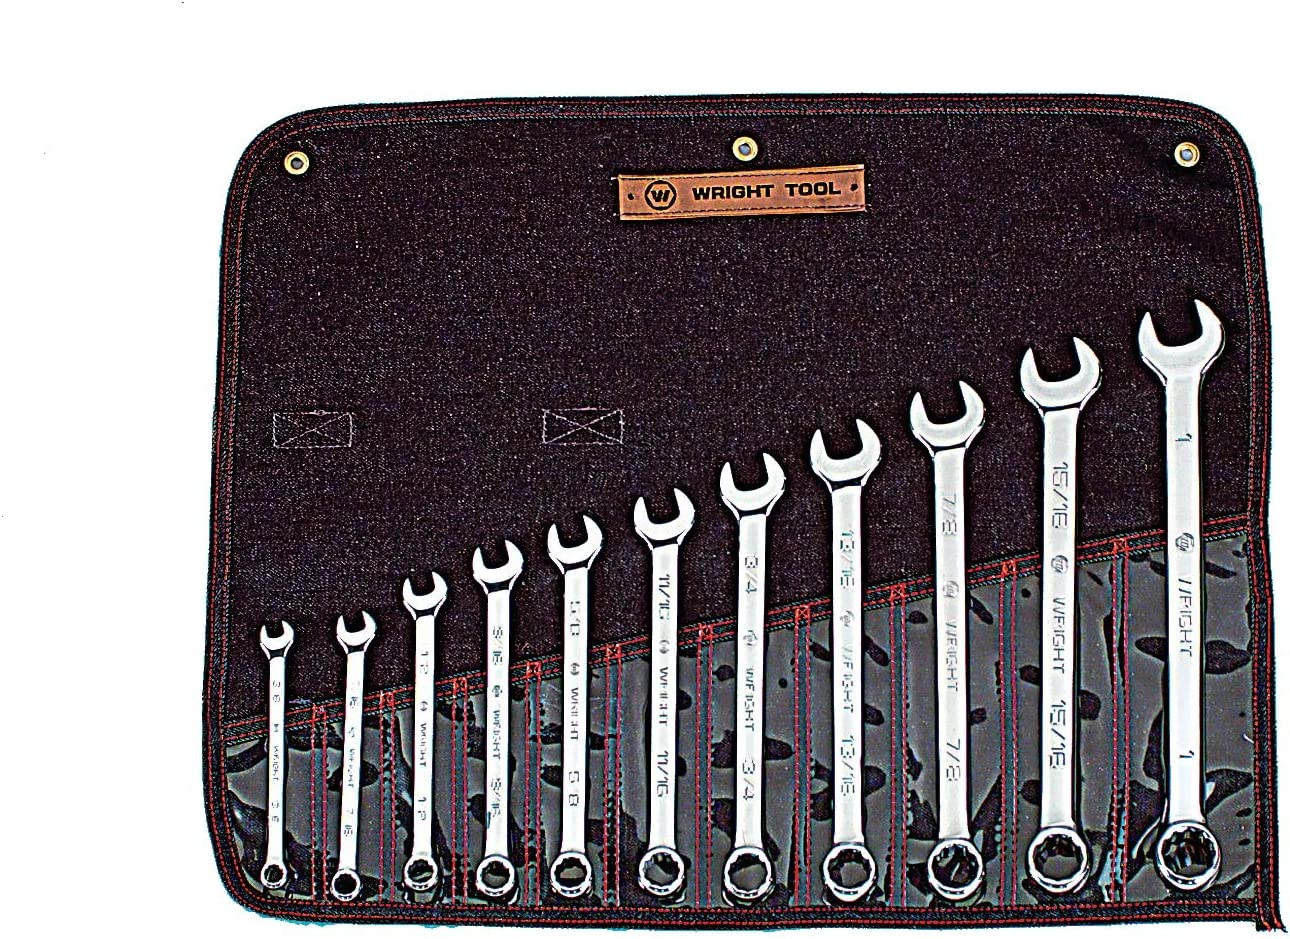 Wright Tool 911 Full Polish 12 Point Complete Free Shipping Wrench Combination Set Max 54% OFF 8